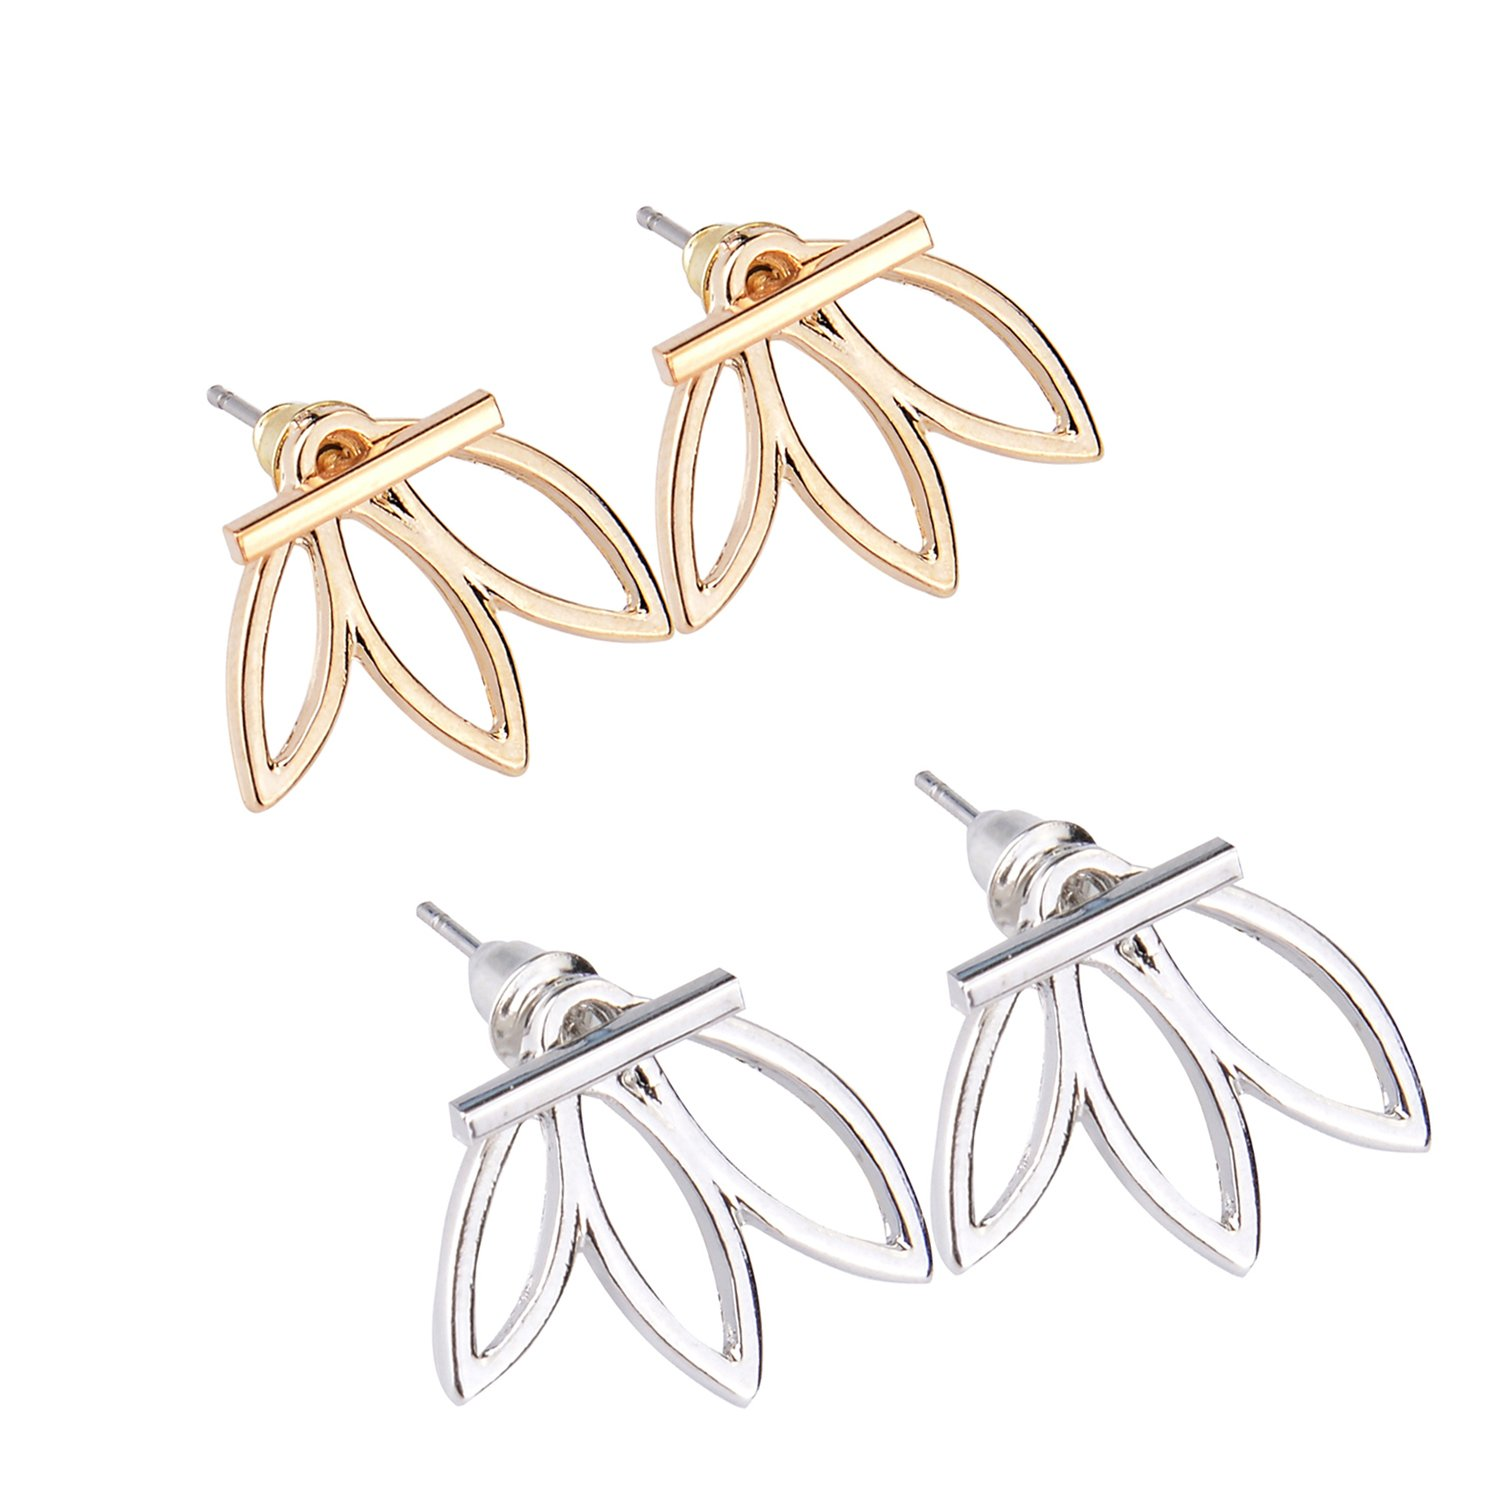 Diomate(TM) 2 Pairs Lotus Flower Earrings Jewelry Simple Chic Earrings Best Gift for Women Girls Petrel S11